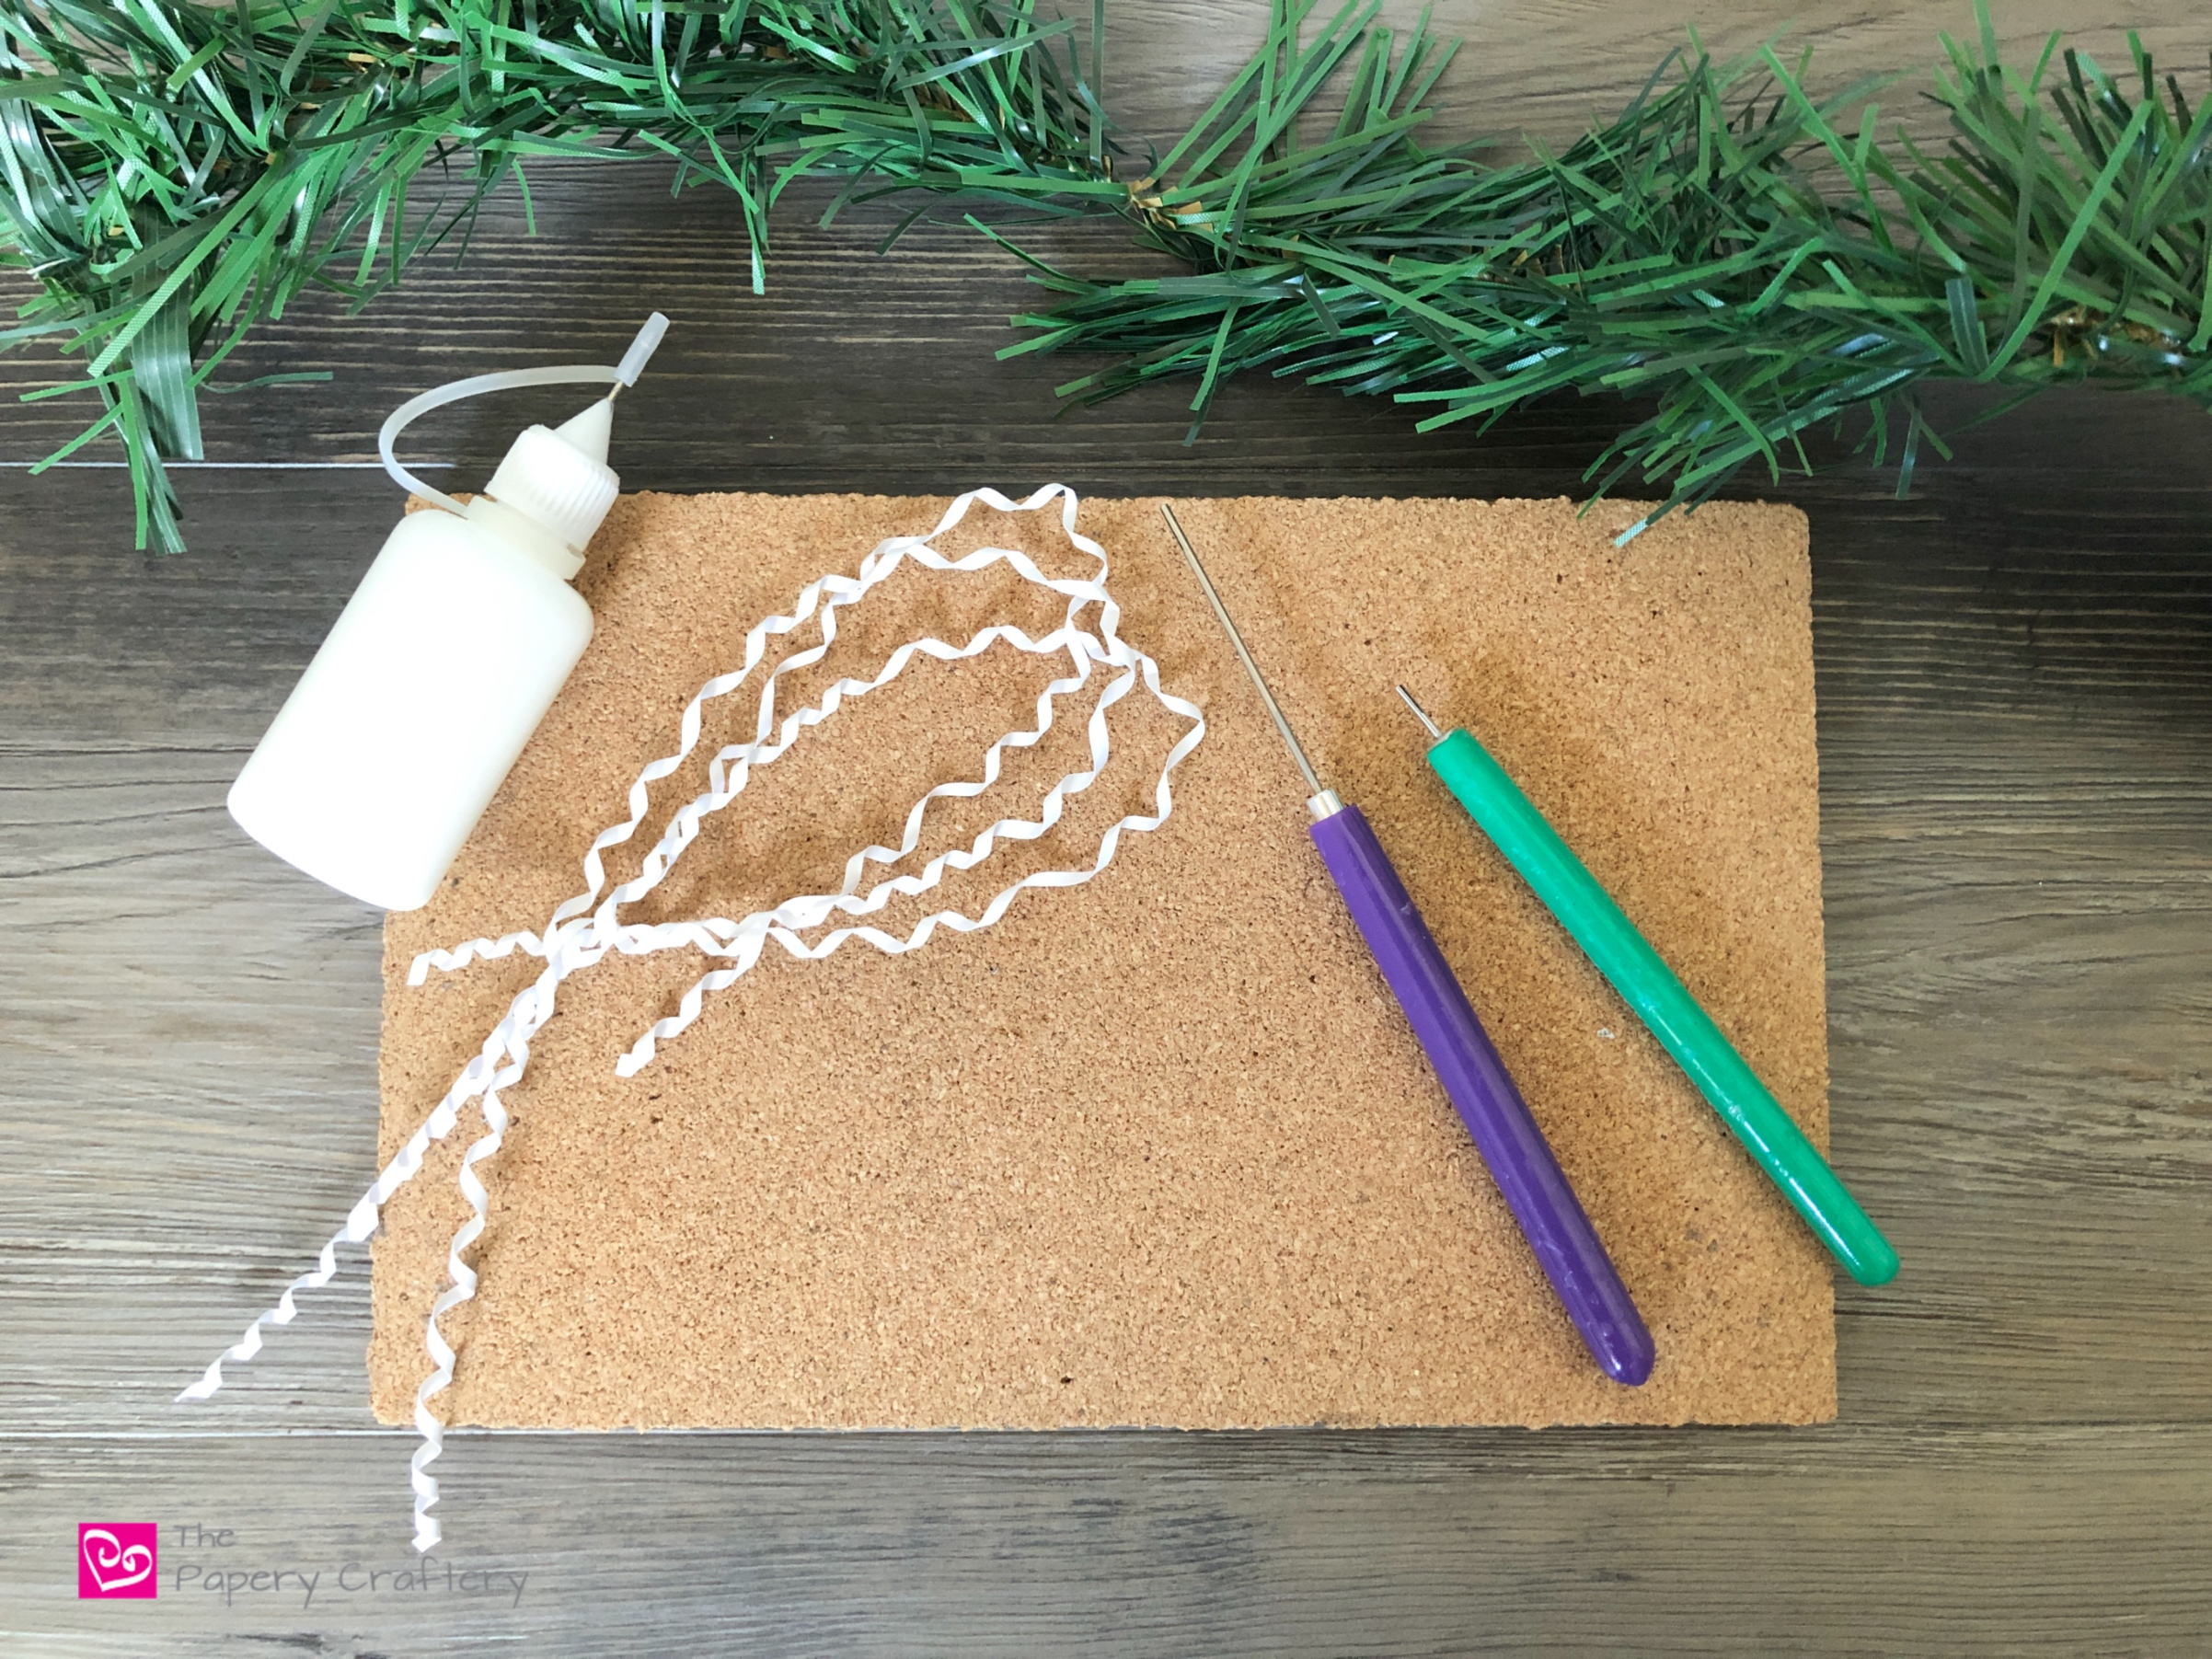 Quilling tools and Christmas garland